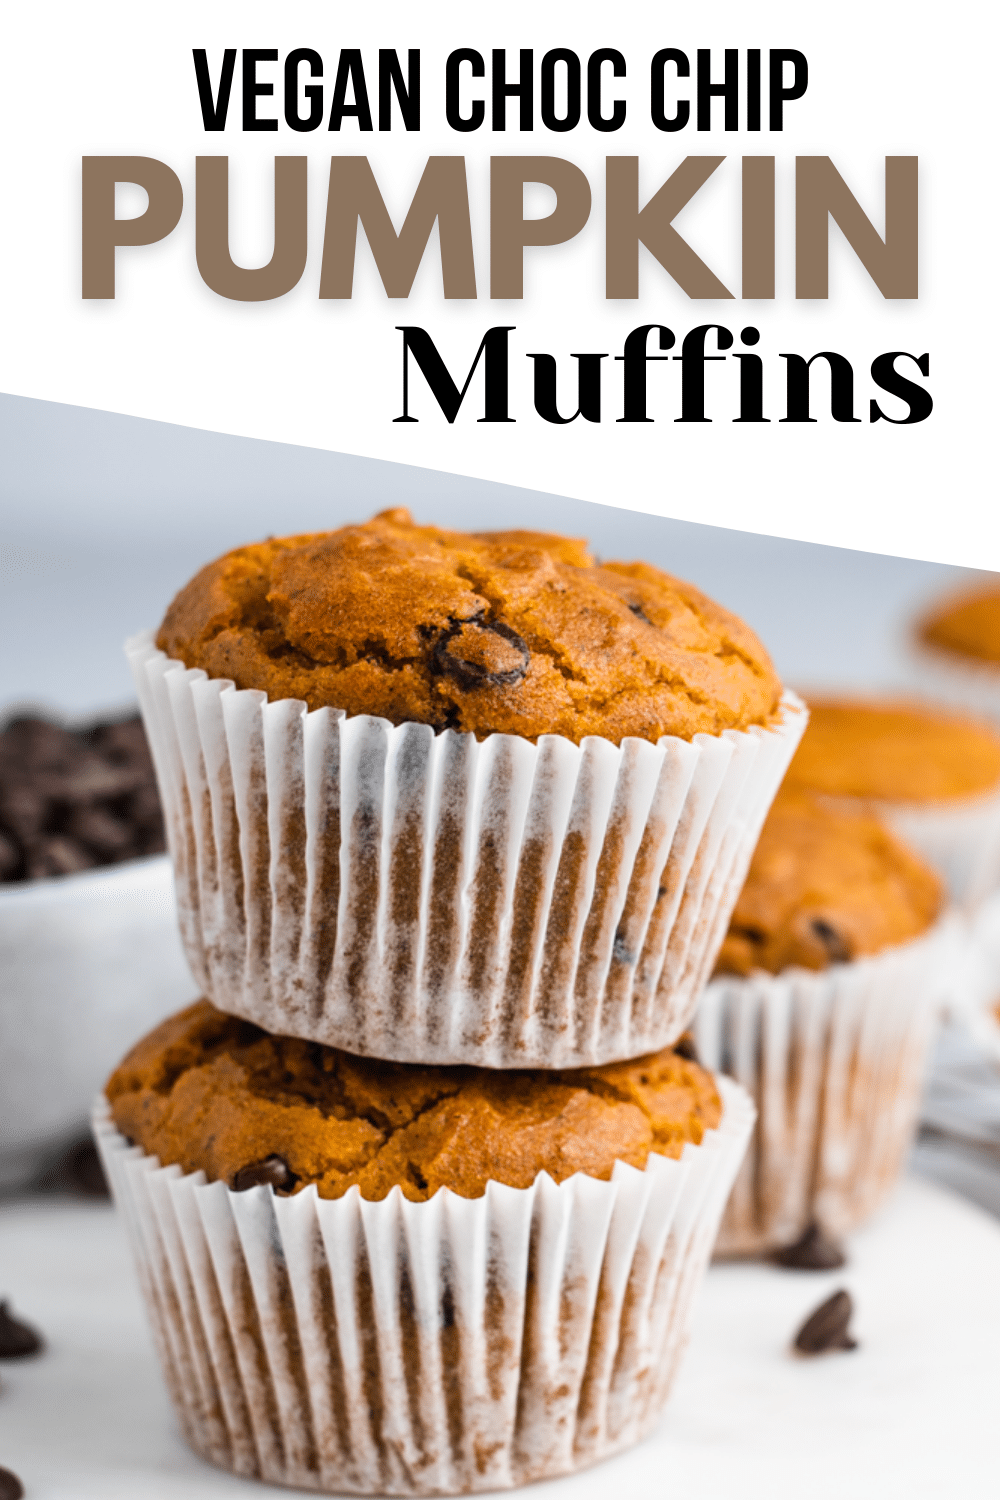 Have a craving for some pumpkin spice goodness plus some chocolate? I have you covered with this easy recipe for Vegan Pumpkin Chocolate Chip Muffins! #pumpkinmuffins #veganmuffins